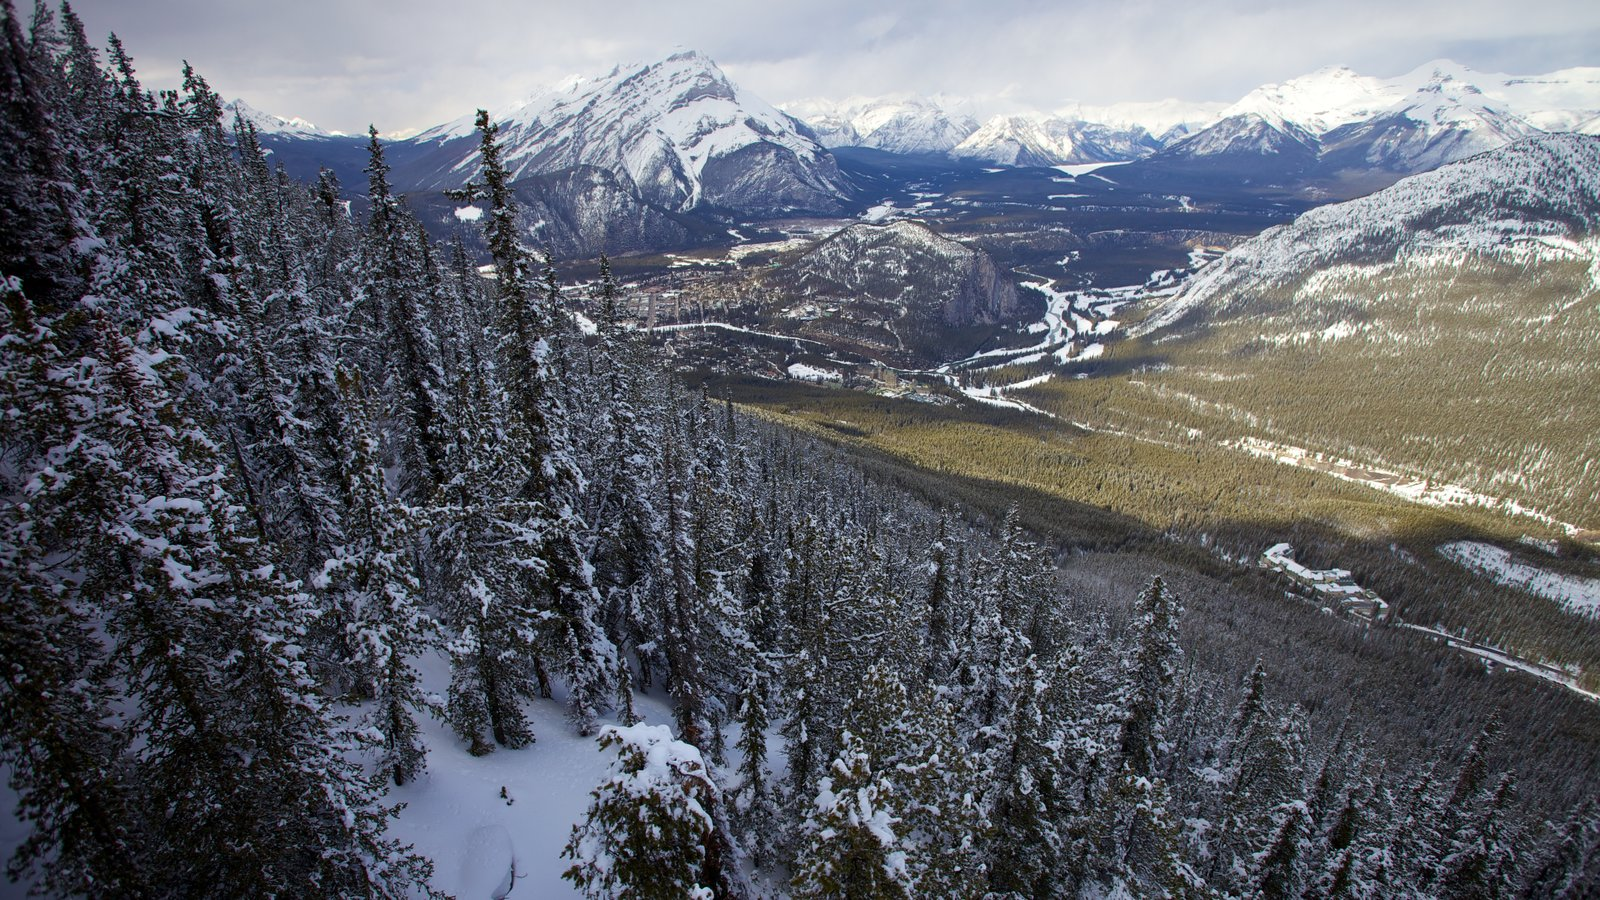 Banff Gondola showing landscape views, snow and mountains